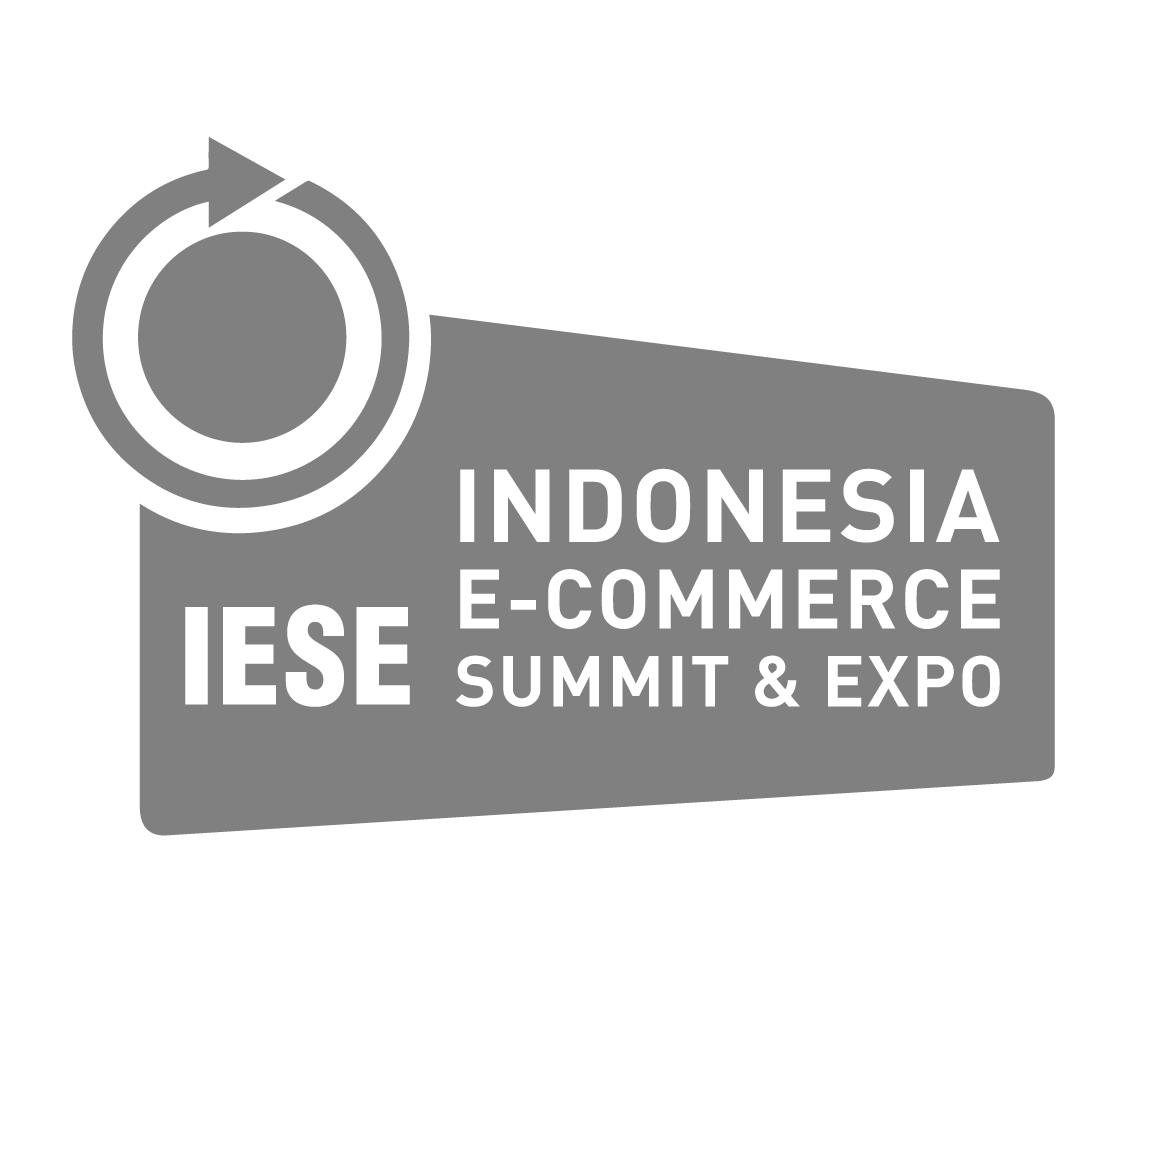 The 2nd IESE (Indonesia E-Commerce Summit & Expo)